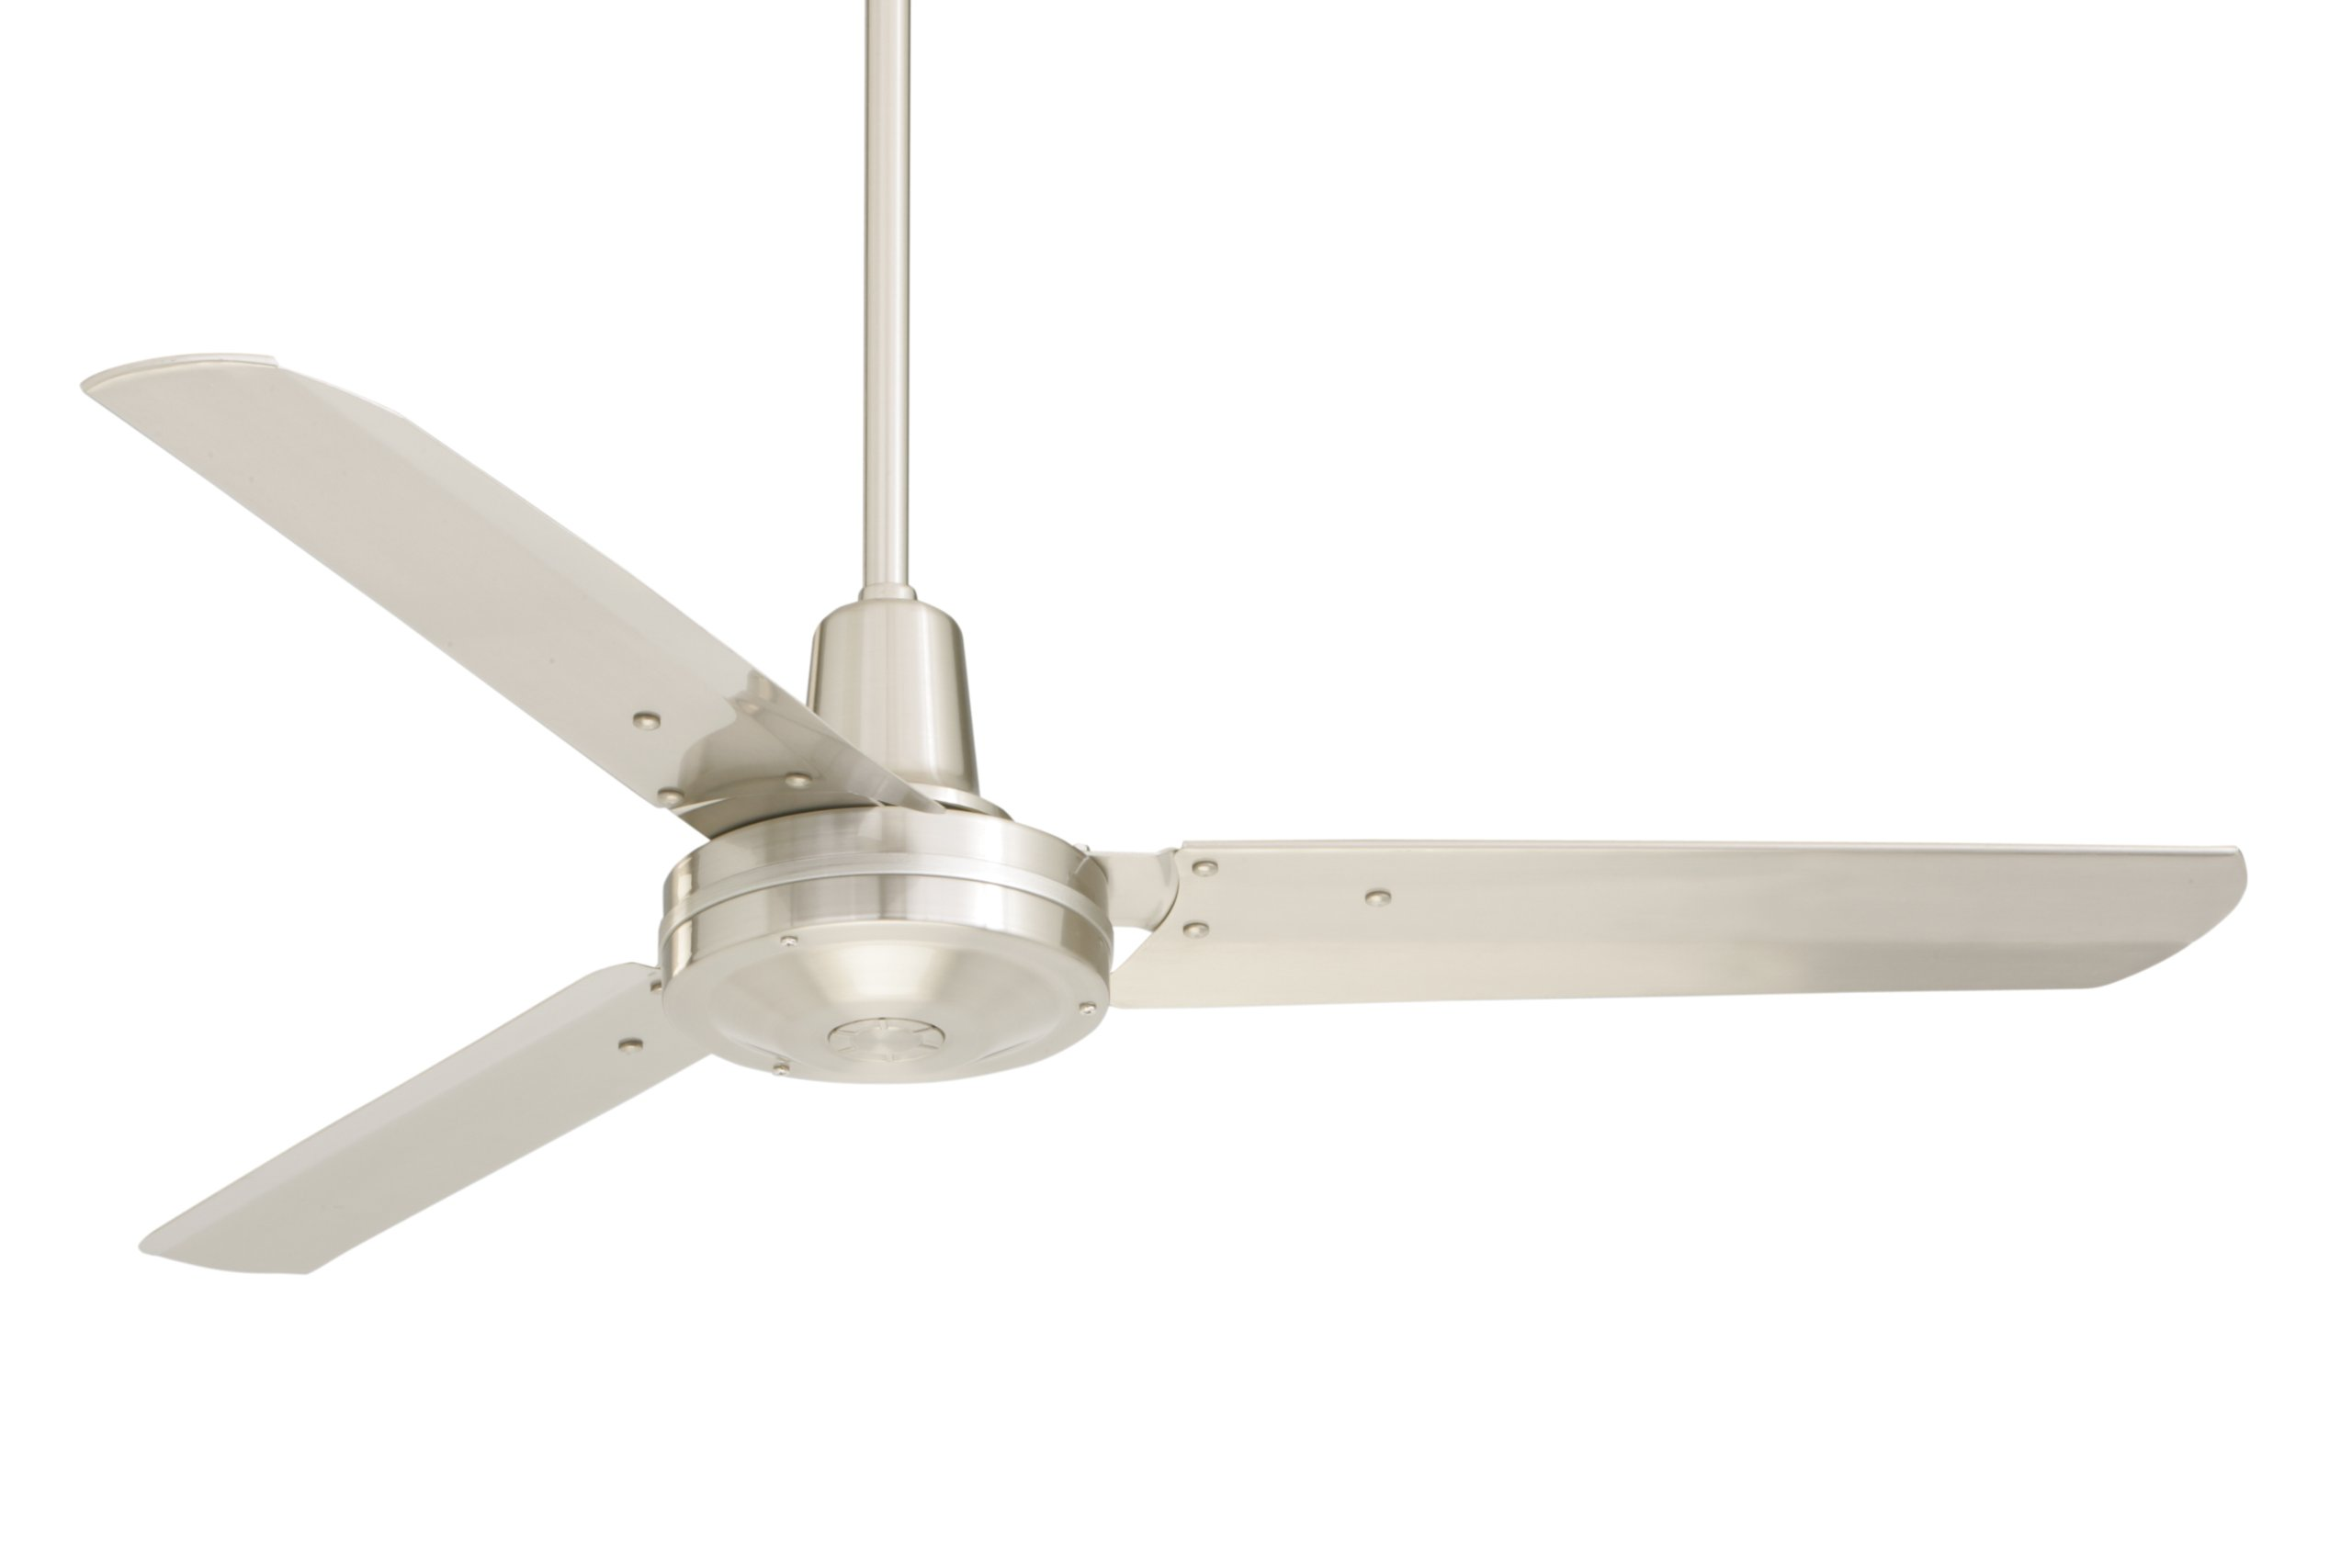 Emerson Ceiling Fans HF948BS industrial Fan, Indoor Ceiling Fan With 48-Inch Blades, Brushed Steel Finish